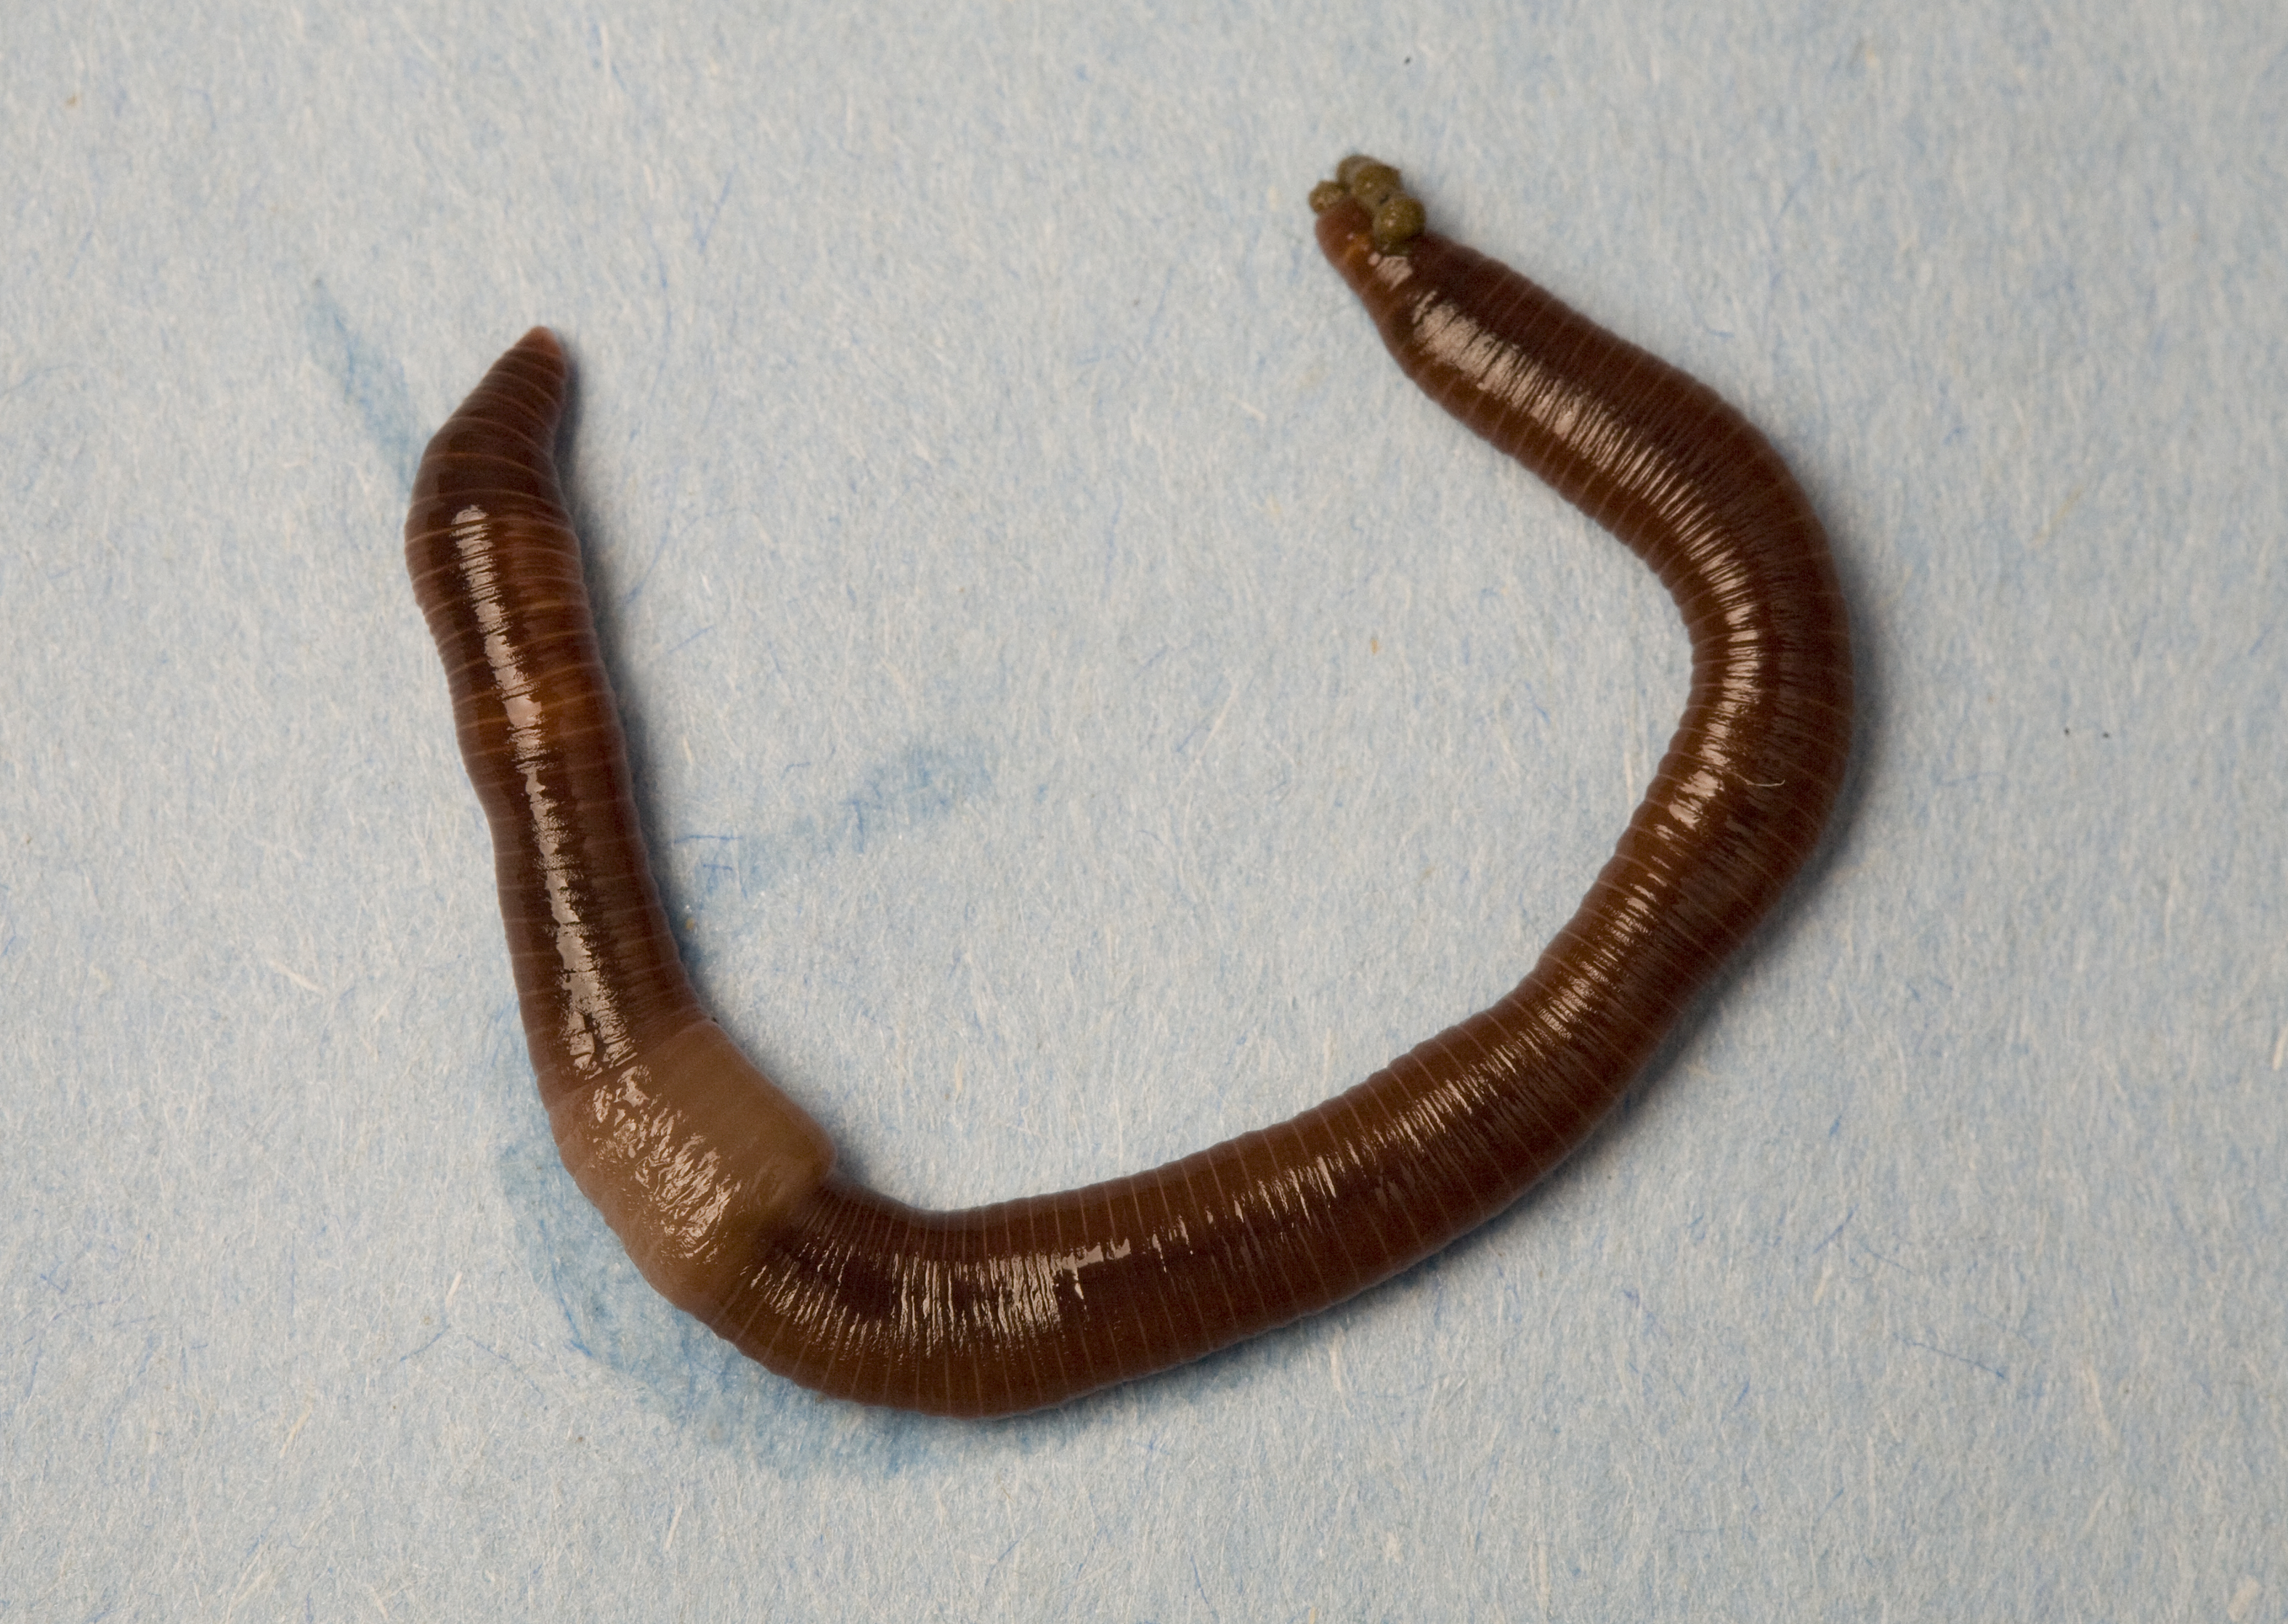 Raise Your Hand If You Have Ever Seen A Worm